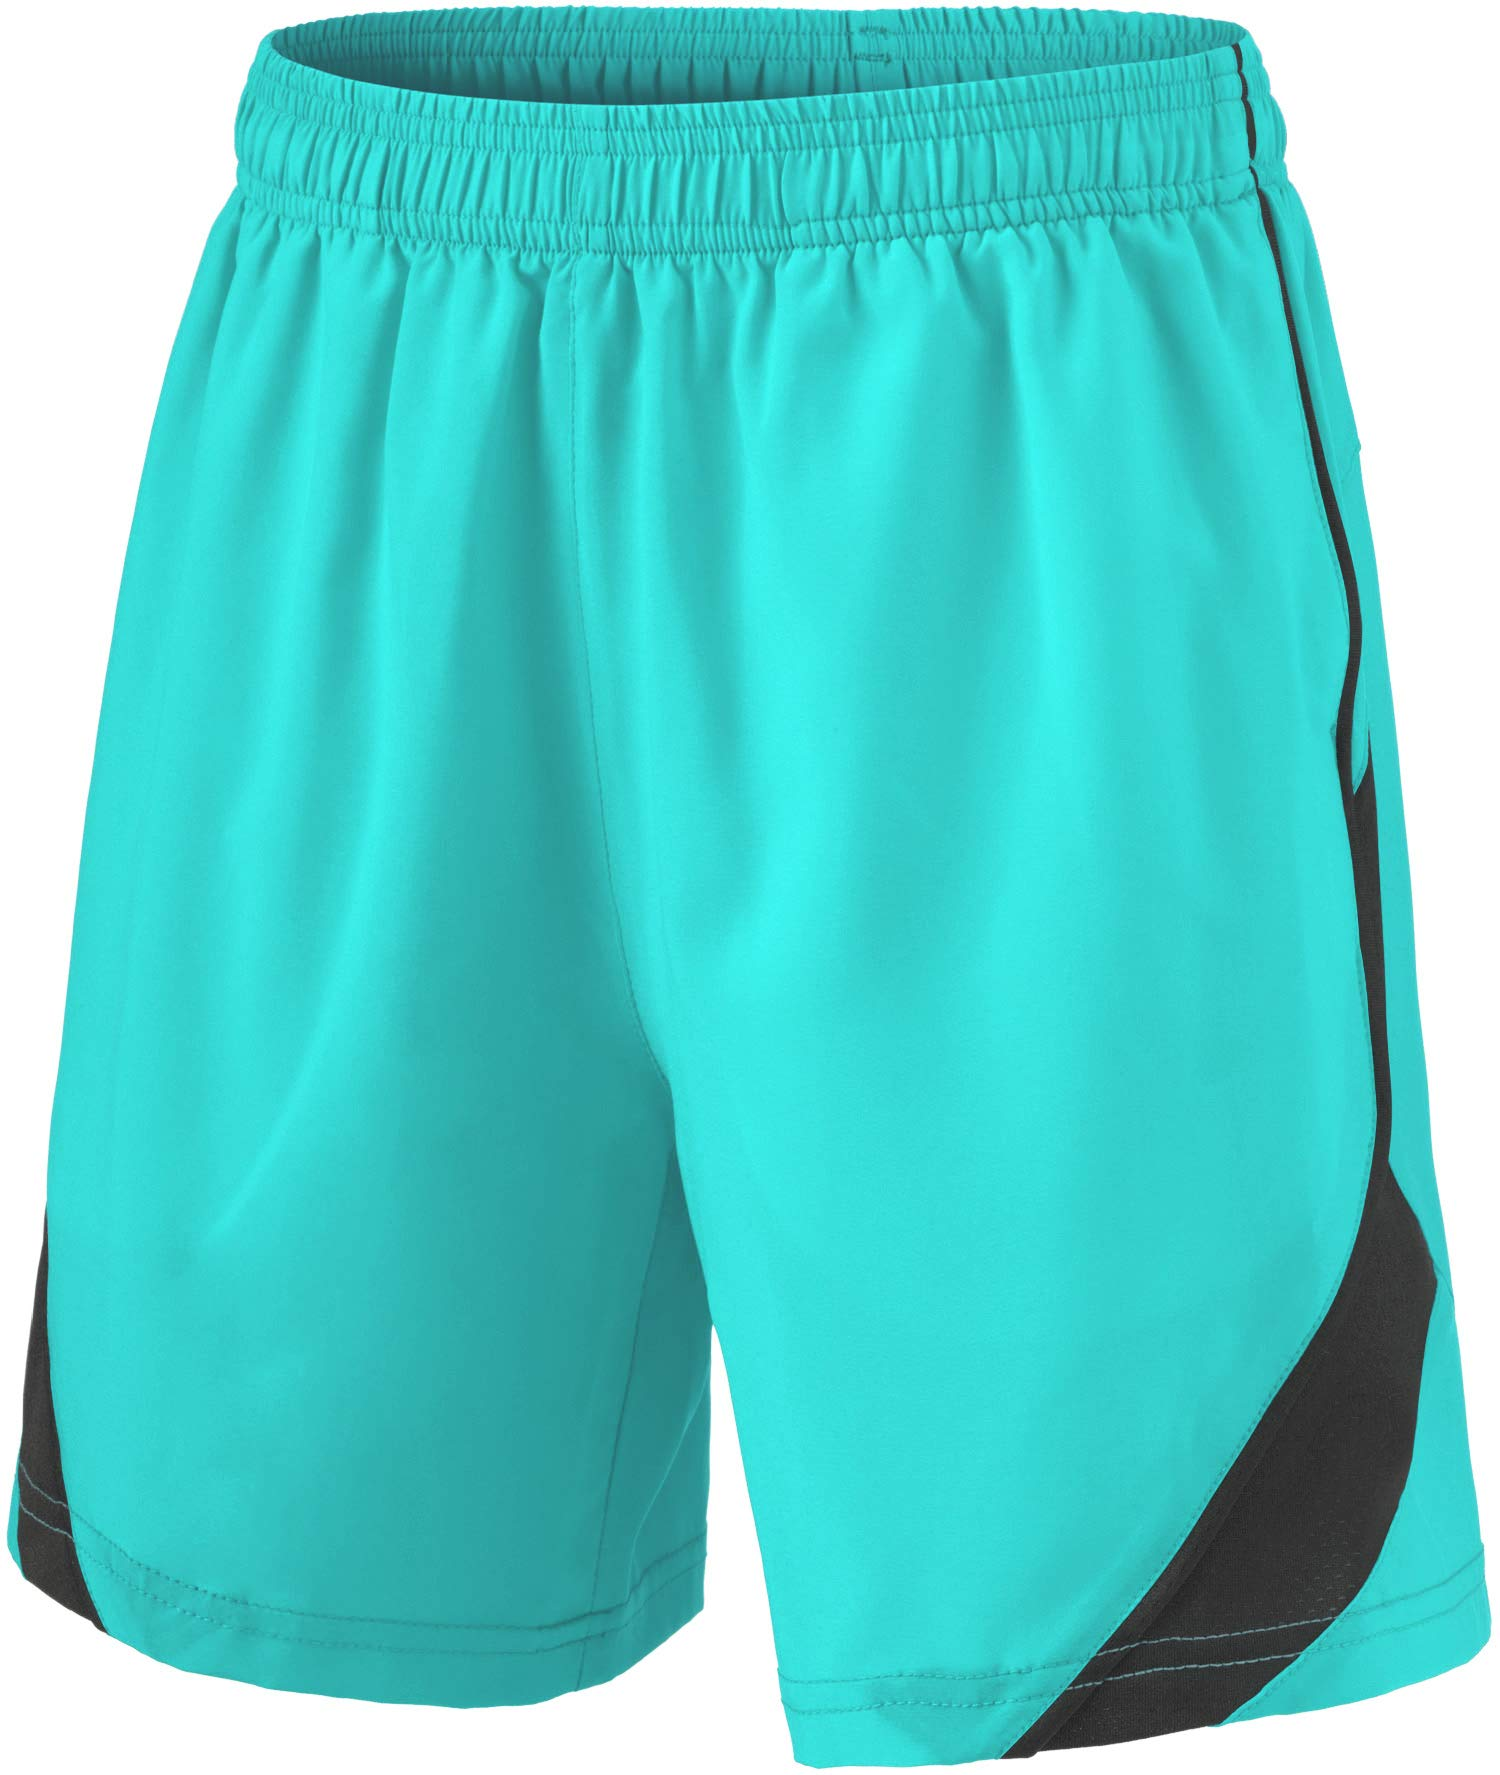 TSLA Boy's Active Shorts Sports Performance Youth HyperDri II w Pockets, Stretch Pace(kbh76) - Teal, Youth Large by TSLA